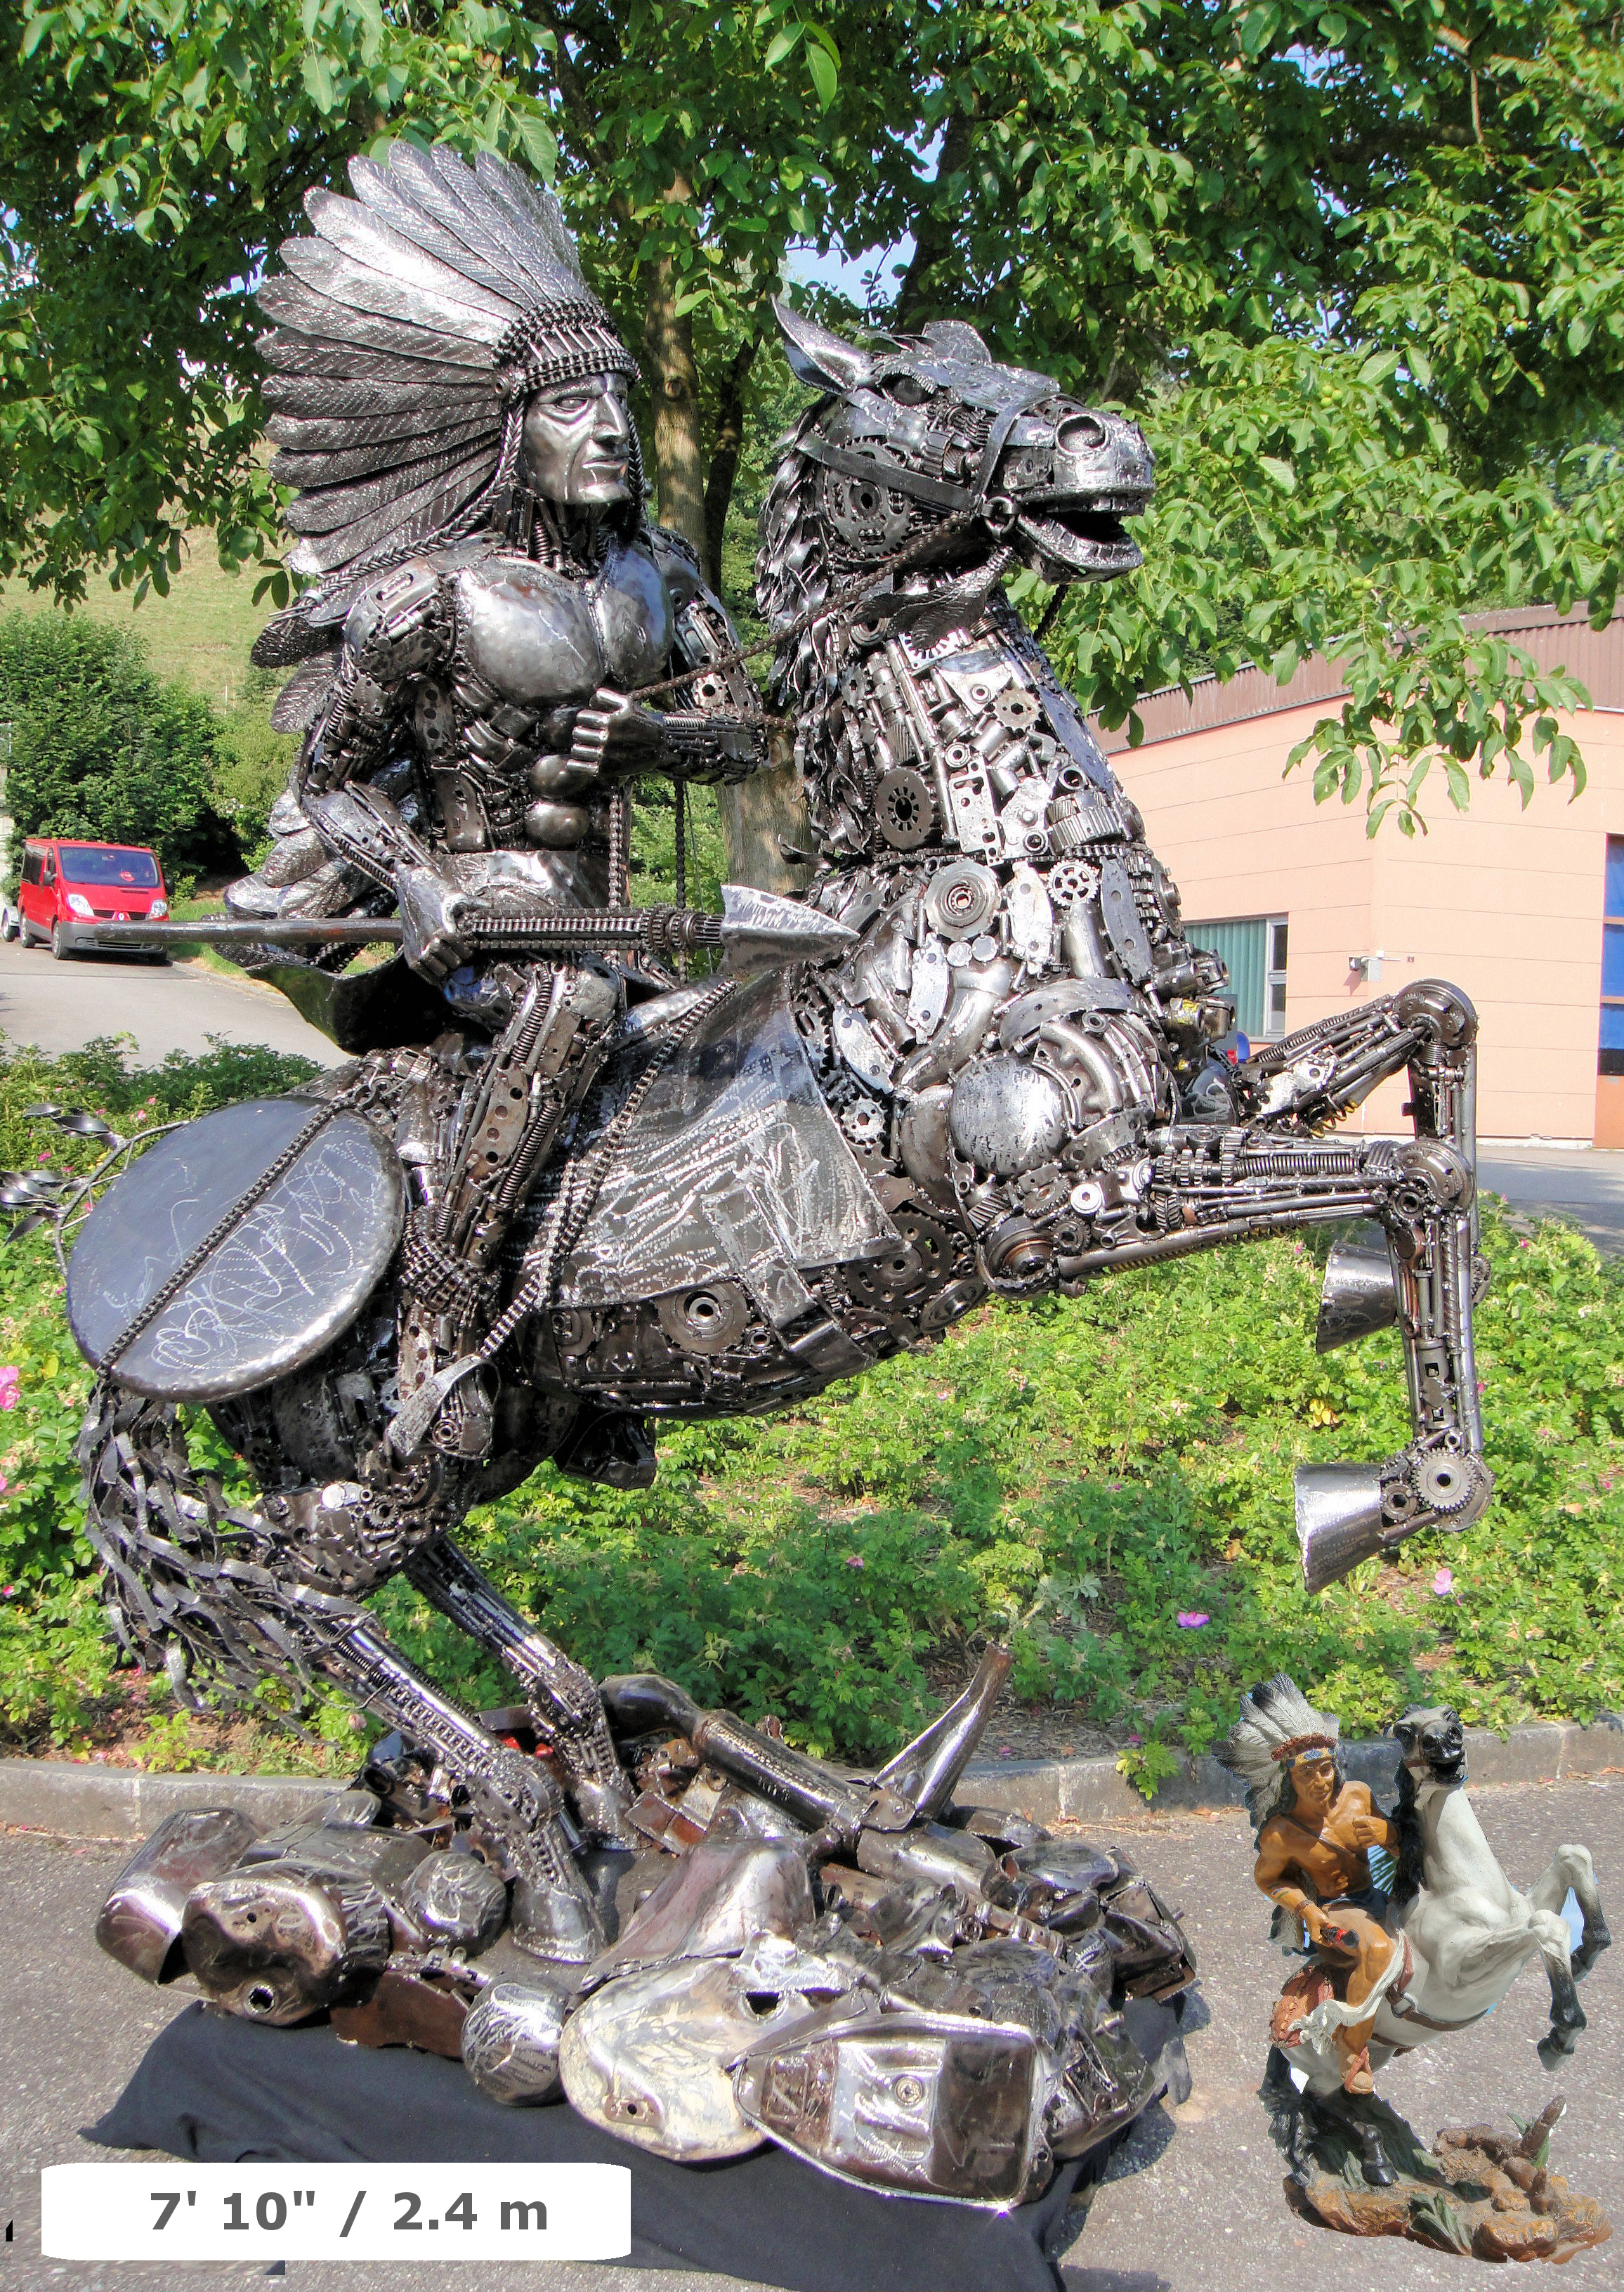 Custom Sculptures Made From Recycled Metal By Tom Samui on welded metal art sculptures